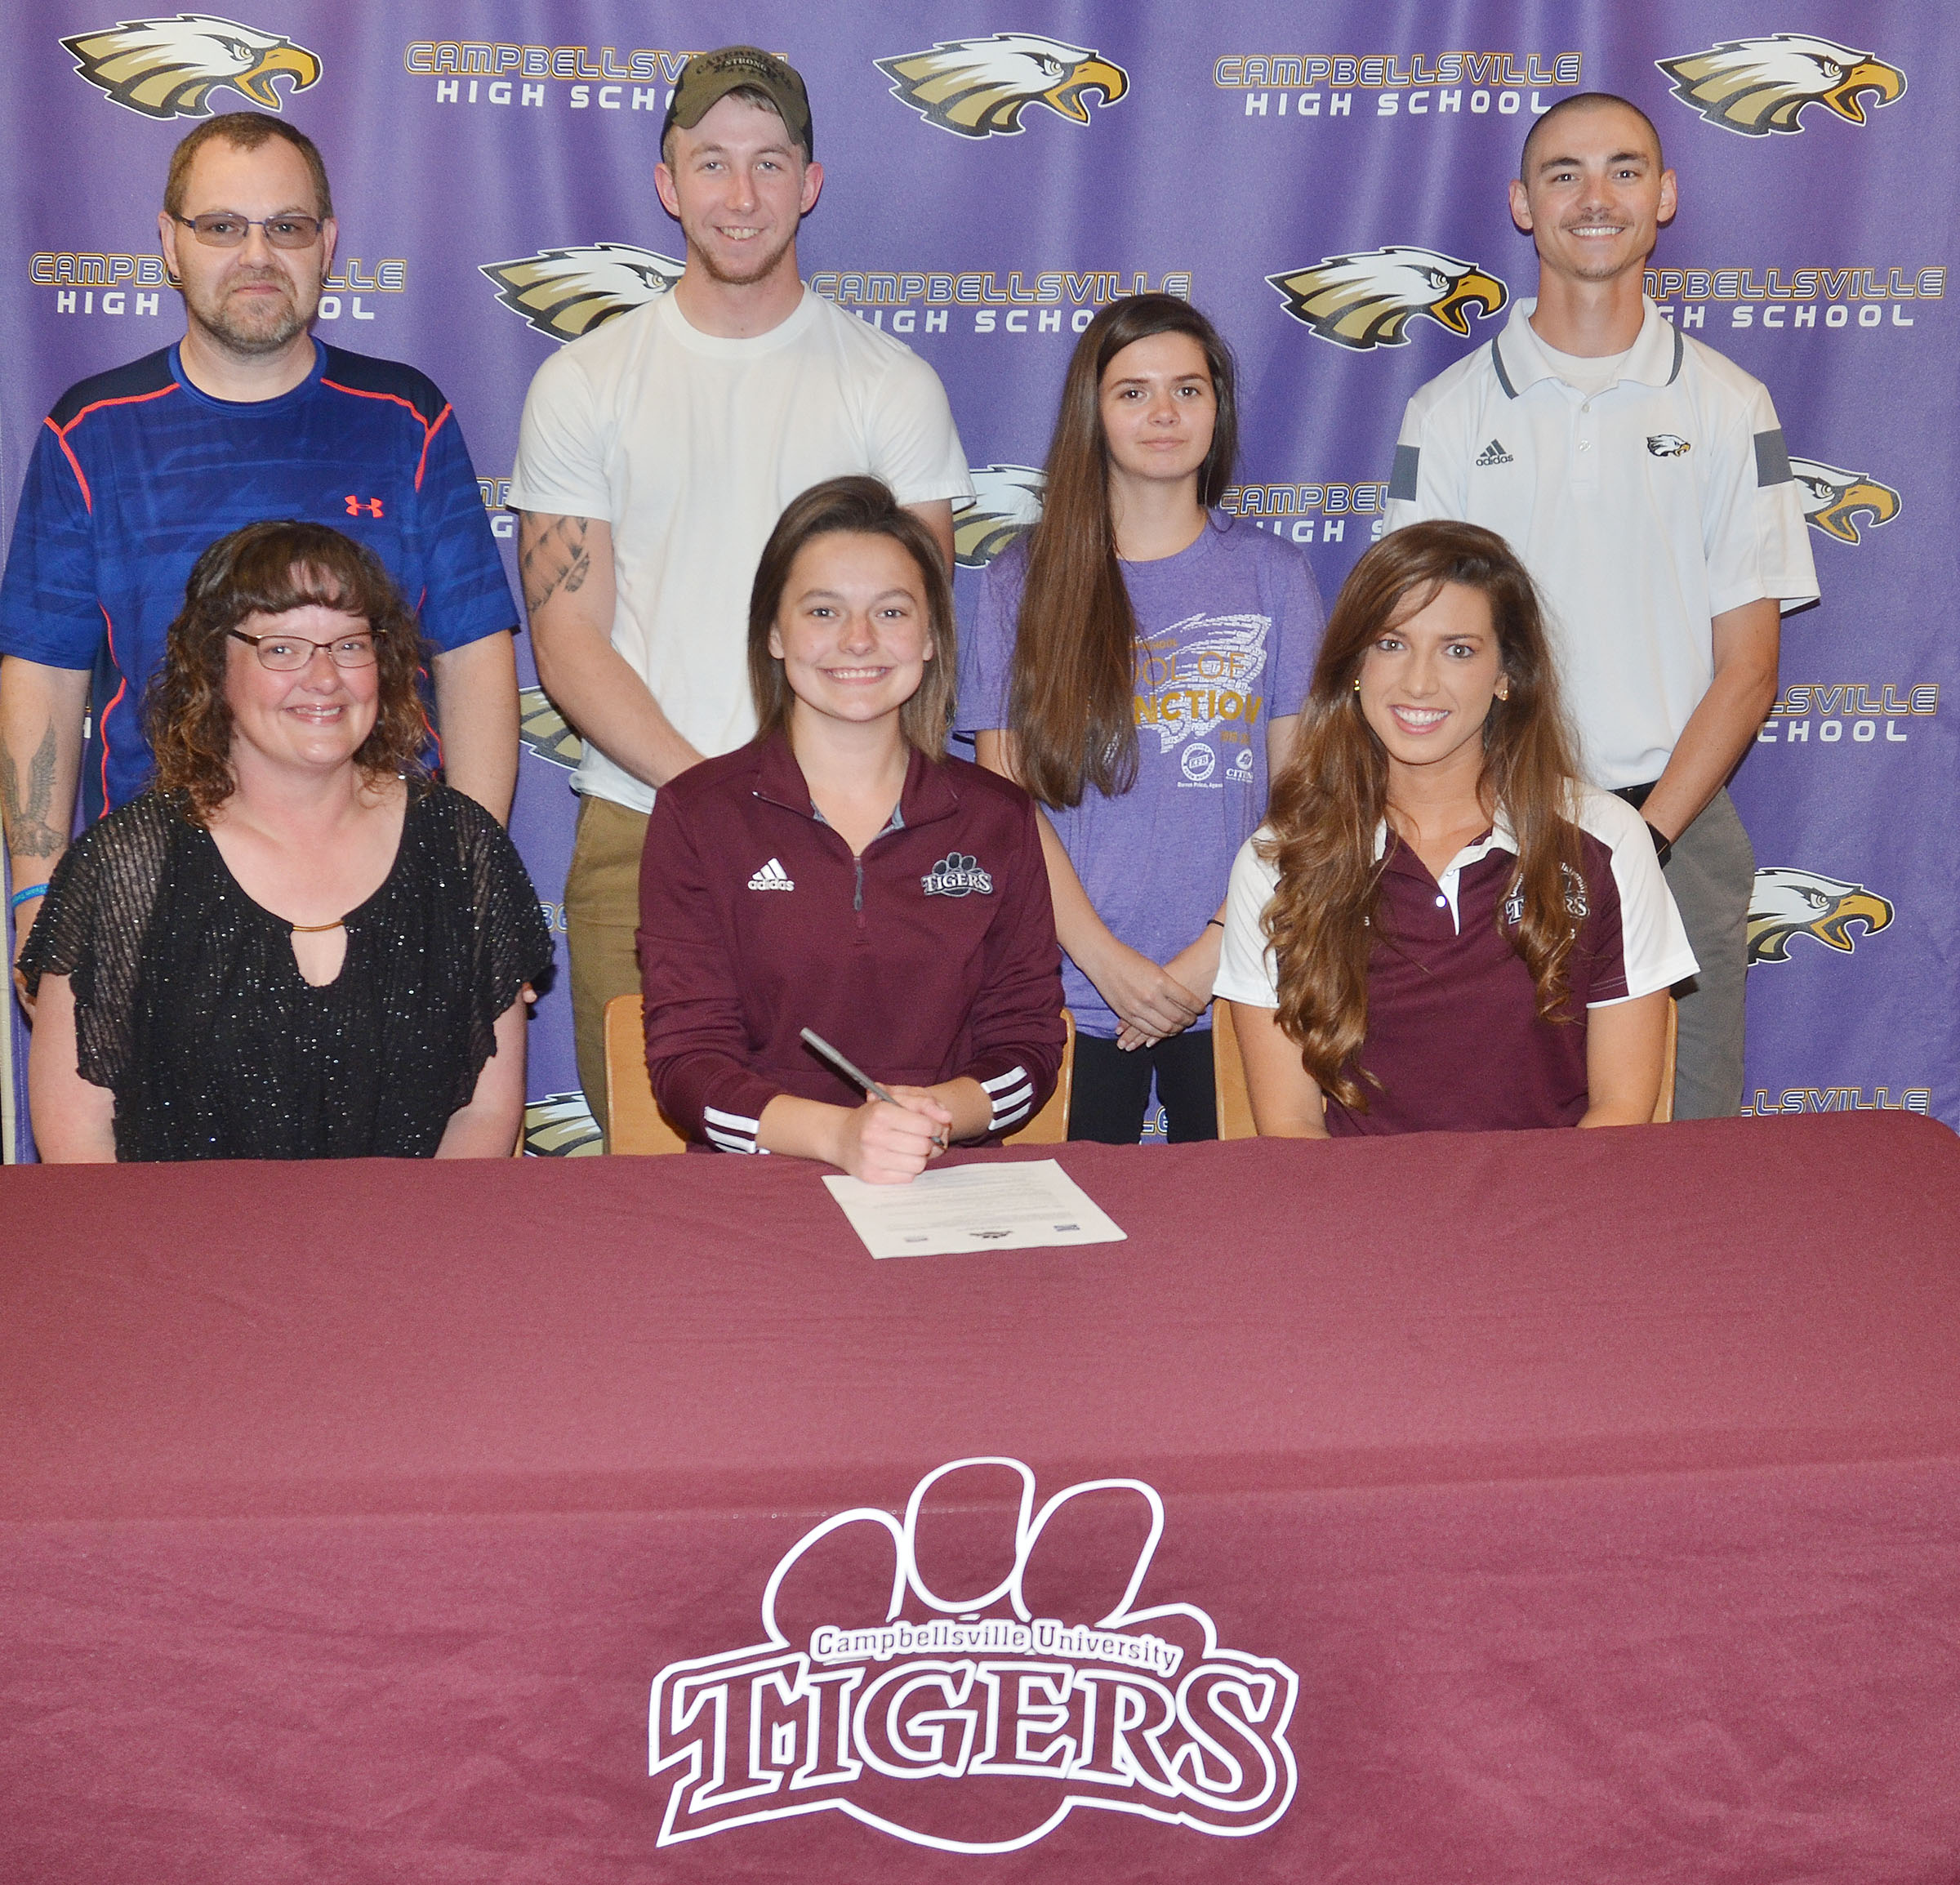 Campbellsville High School senior Kyrsten Hill will continue her academic and tennis career at Campbellsville University this fall. She recently signed her letter of intent in a special ceremony with her family, friends, teammates and coaches. From left, front, are Hill's mother Tonya, Hill and CU head tennis coach Kristen Hamrick. Back, Hill's father Jonathan, Hill's boyfriend Chanse Jernigan, Hill's tennis teammate Shauna Jones, who is also a senior, and CHS tennis coach Bradley Harris.